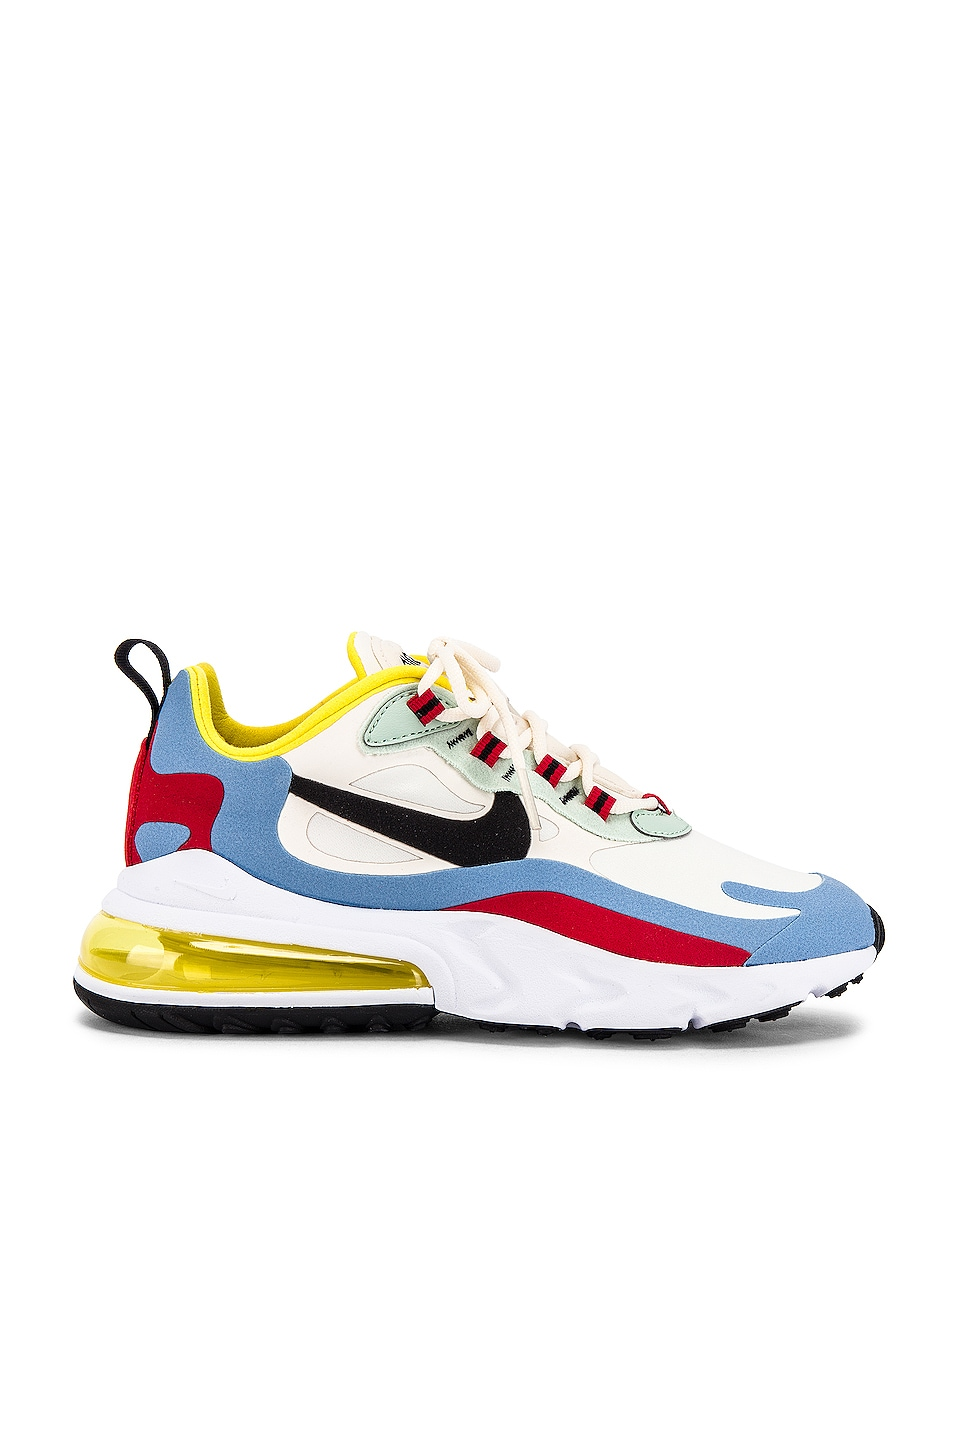 Air Max 270 React Sneaker